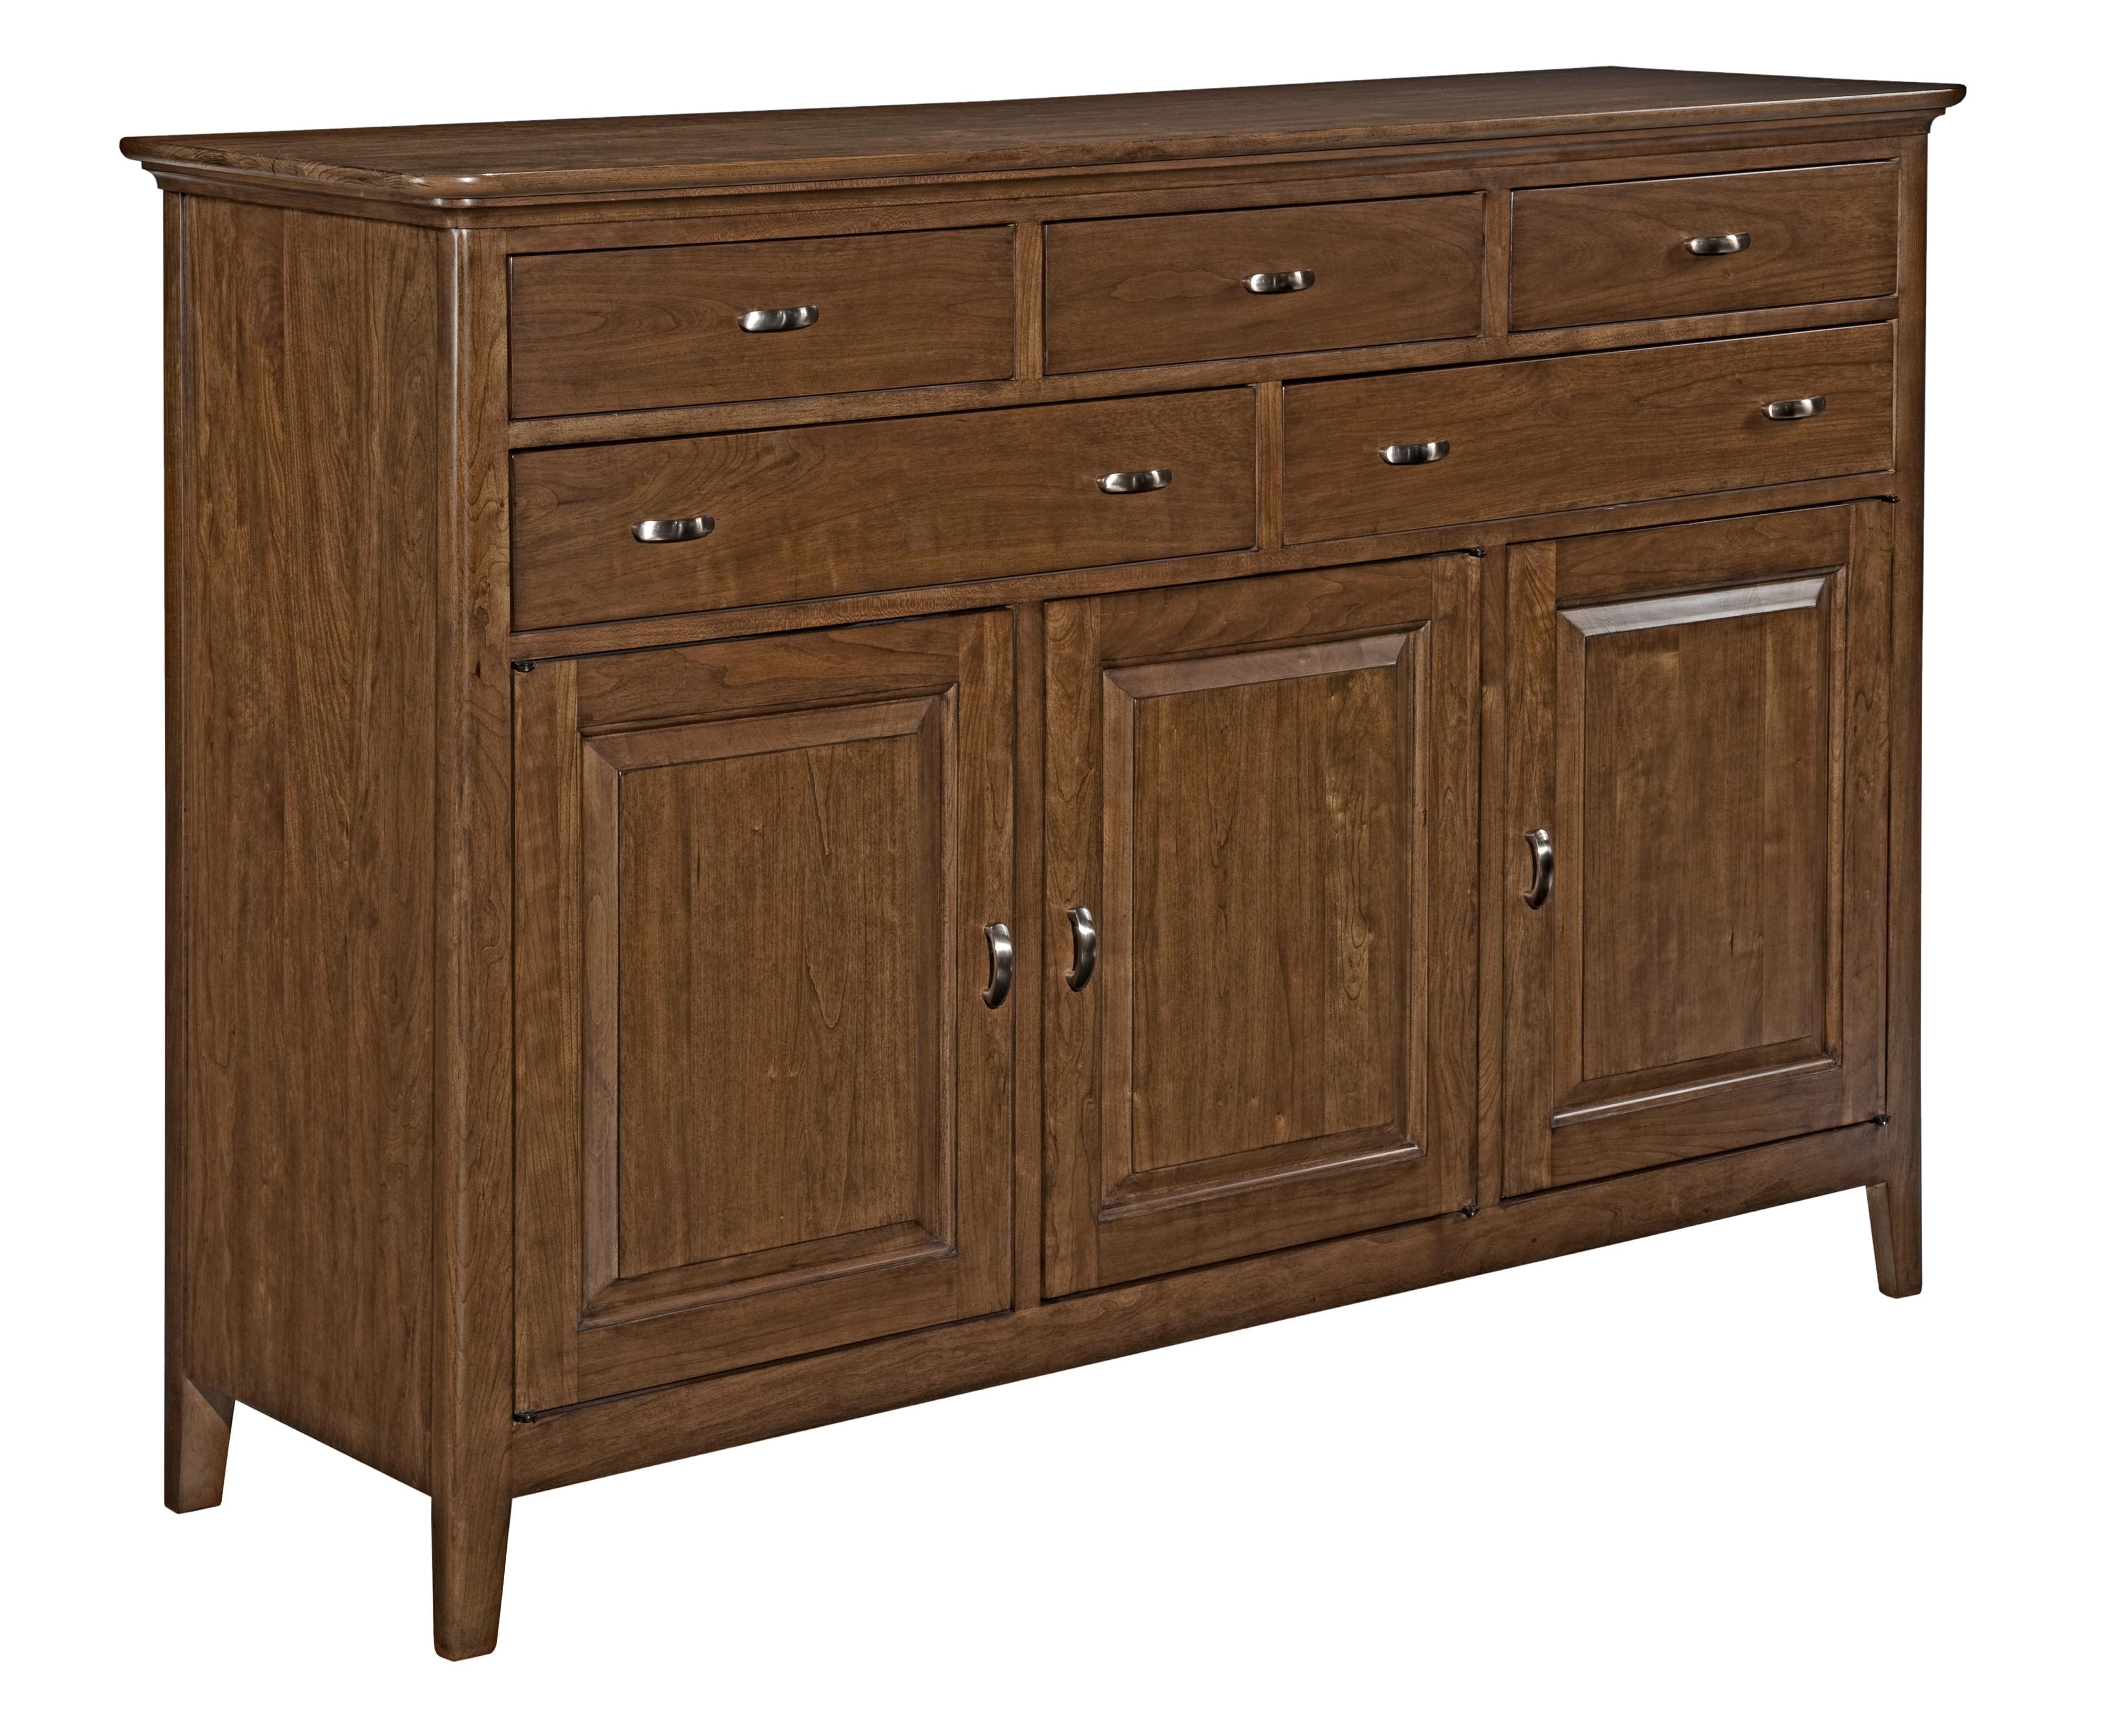 Cherry Park Sideboard by Kincaid Furniture at Northeast Factory Direct